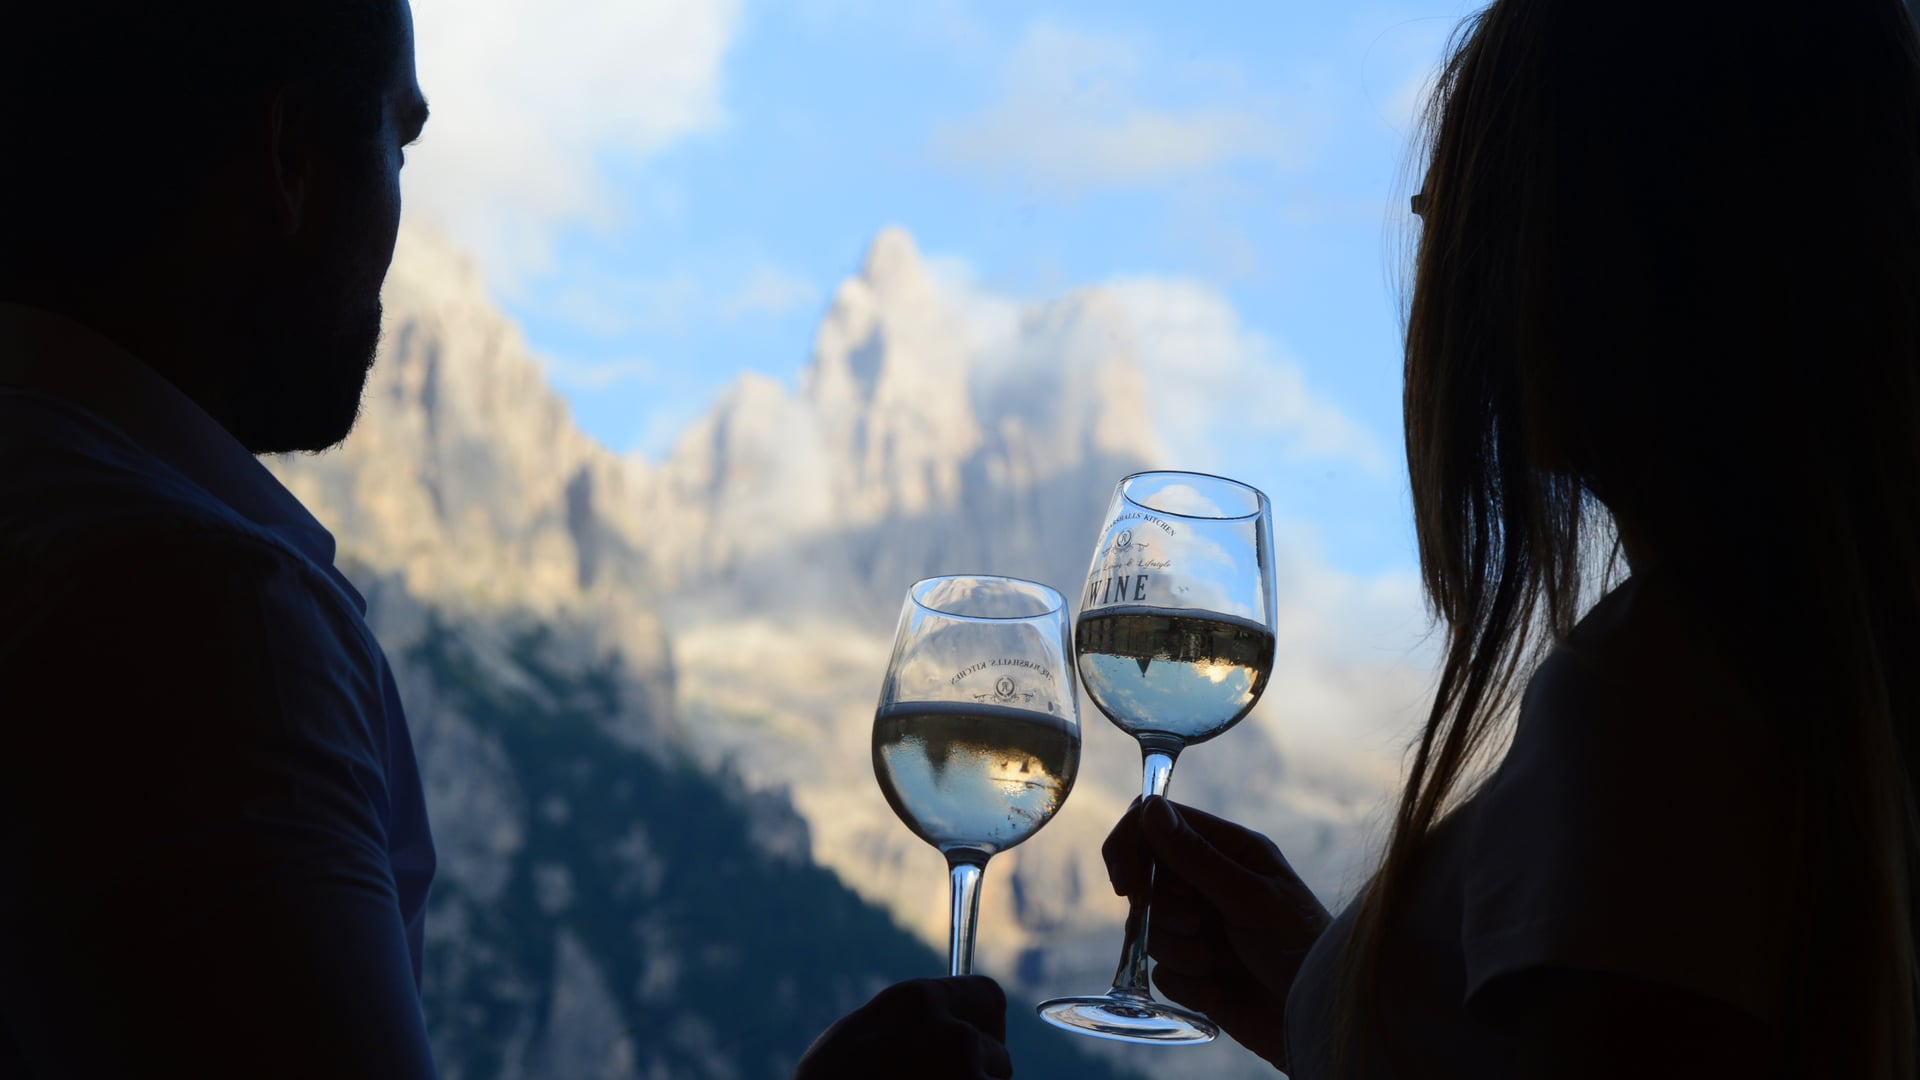 ALEXANDER BAR - Drinking at the foot of the Dolomites